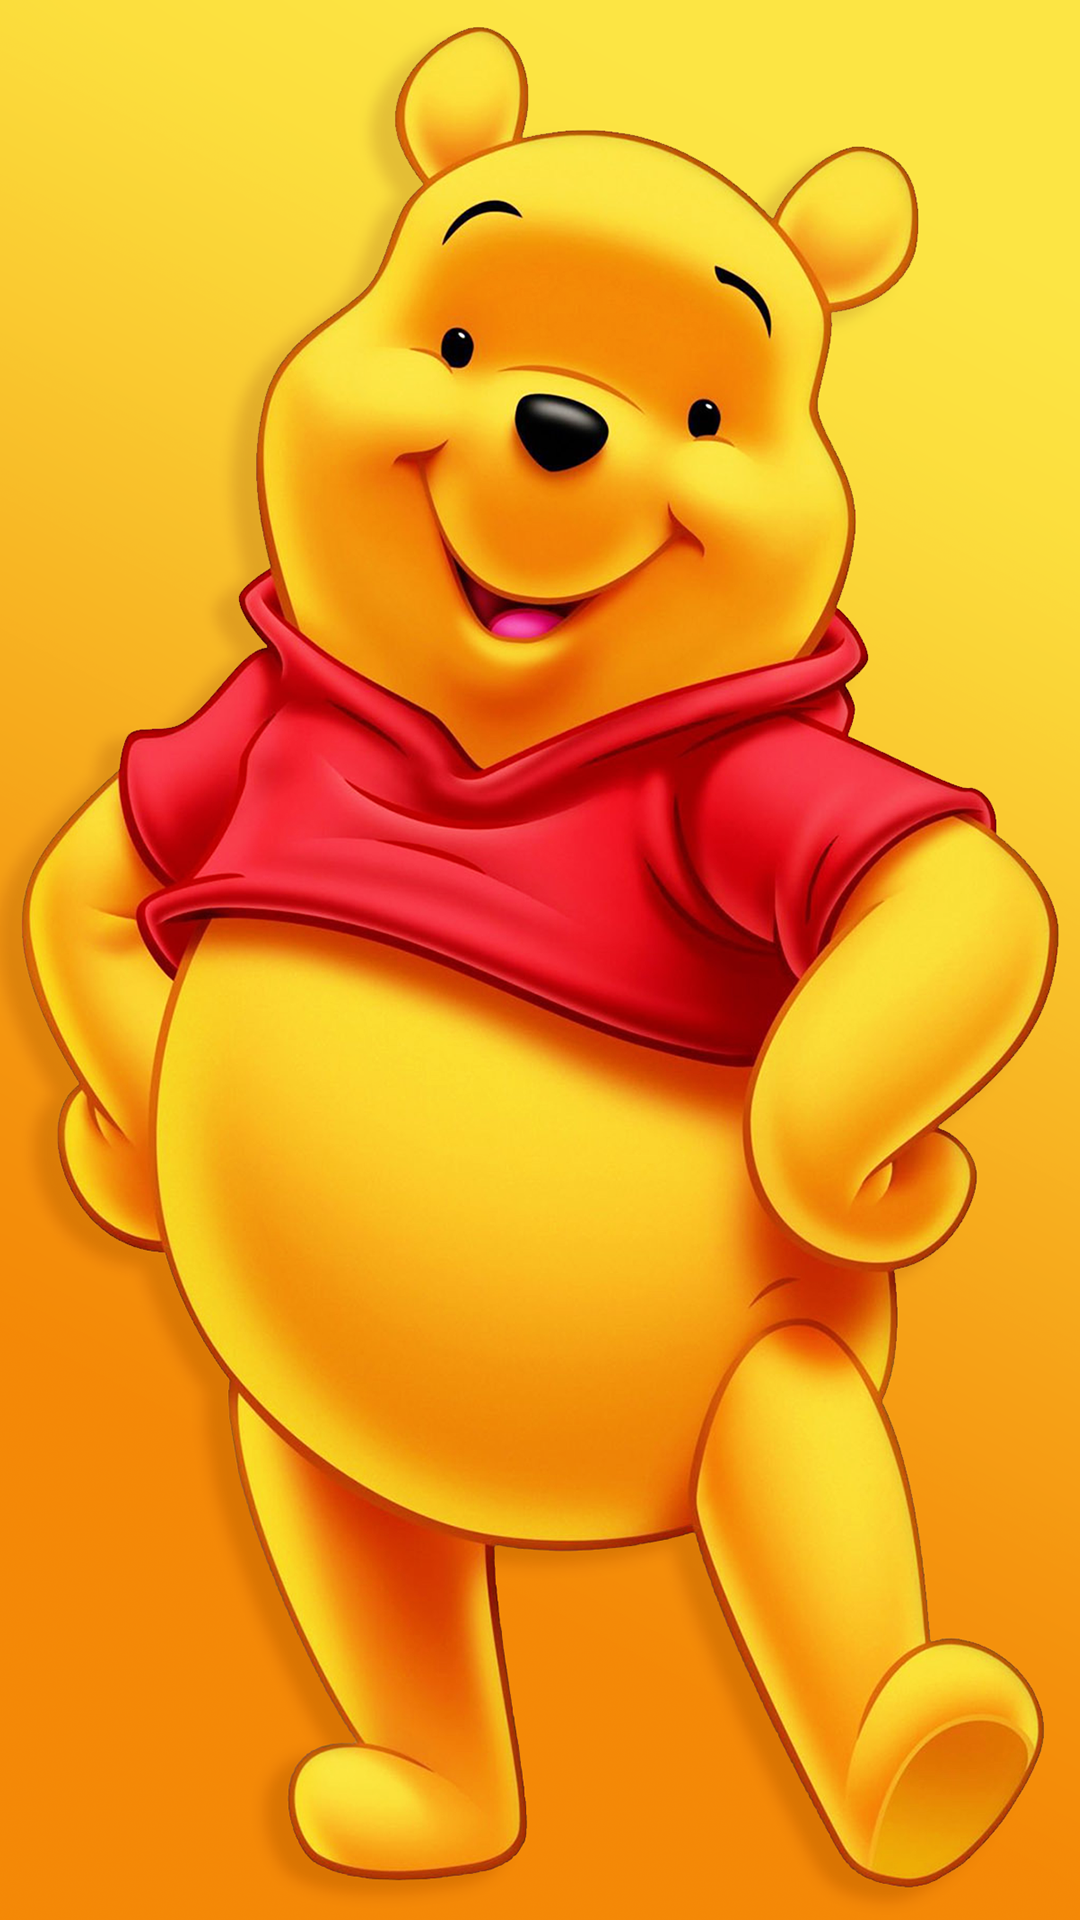 Ultra hd winnie the pooh wallpaper for your mobile phone 0573 winnie the pooh 1080 x 1920 fhd wallpaper winnie the pooh 1080 x 1920 fhd wallpaper voltagebd Image collections